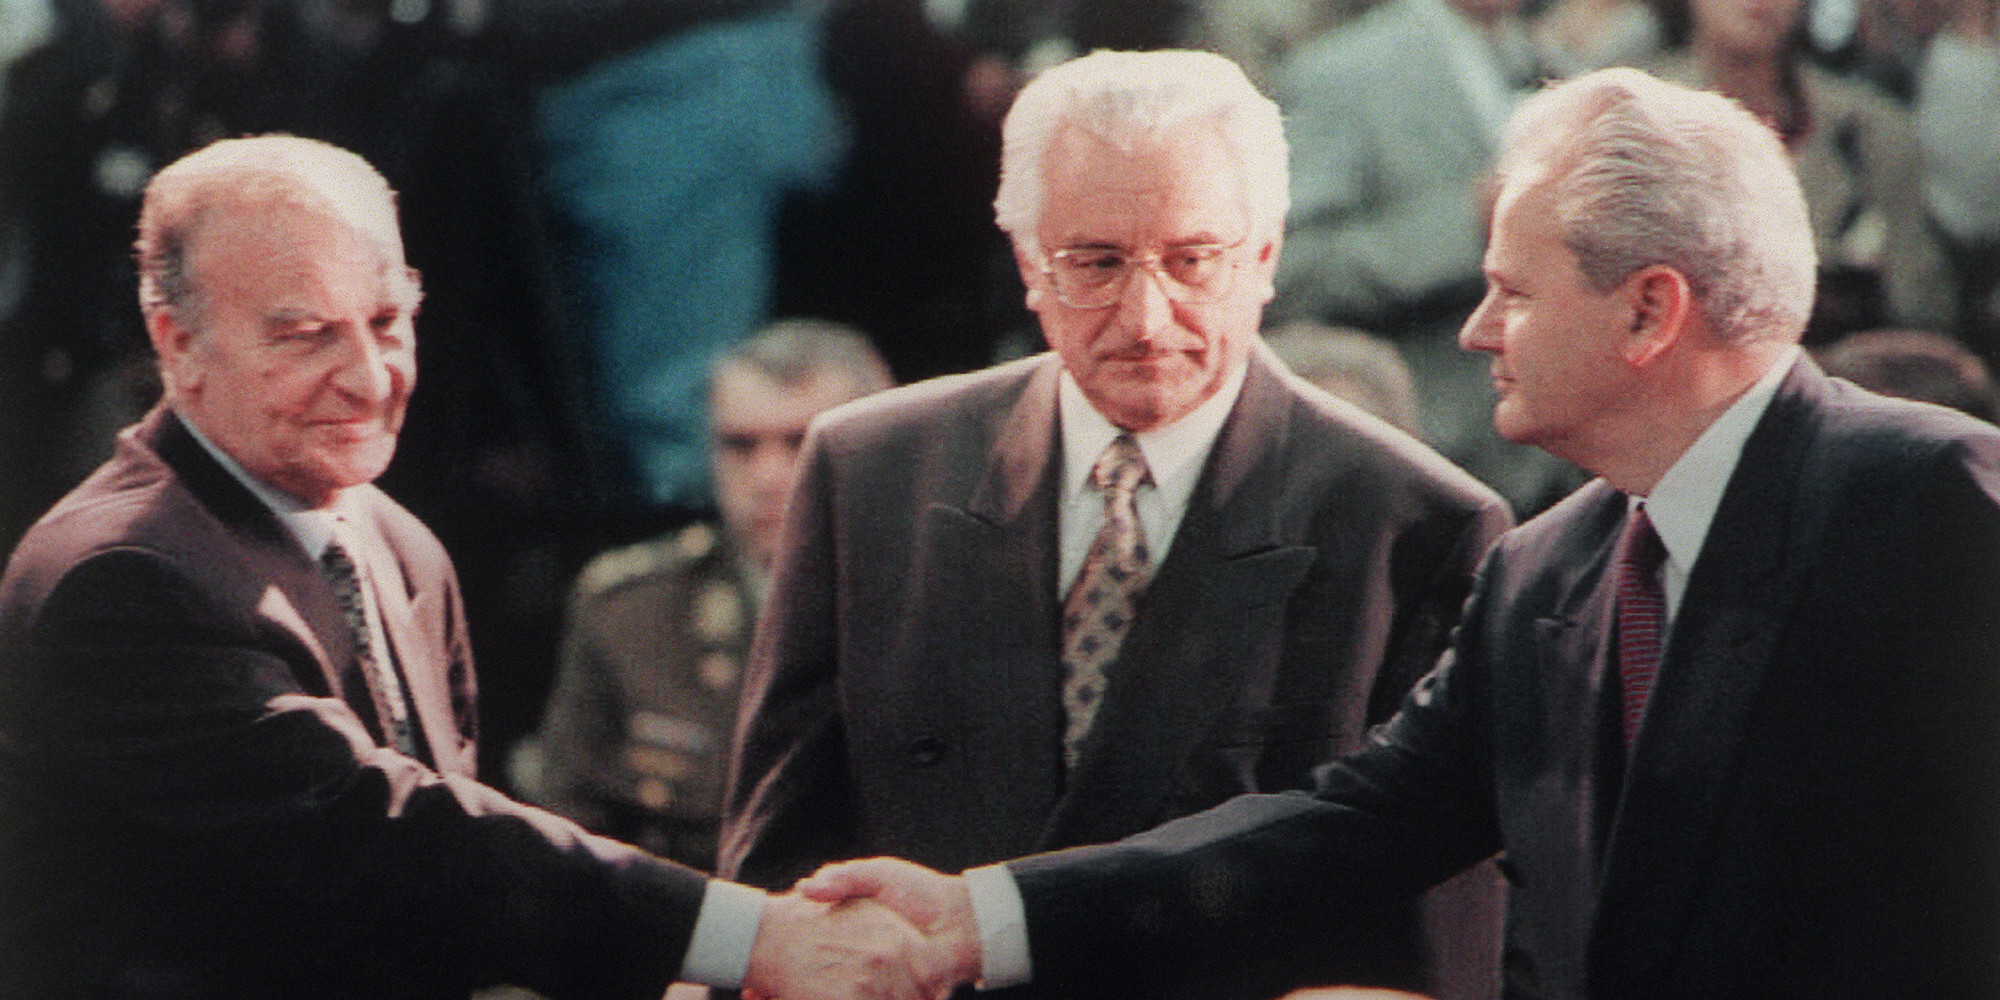 slobodan milosevic finally accepts european unions peace agreement David lindsay at 5:16 pm no comments: realised that the biggest danger to peace did not come from slobodan milosevic, mullah omar, saddam trade unions, faith.